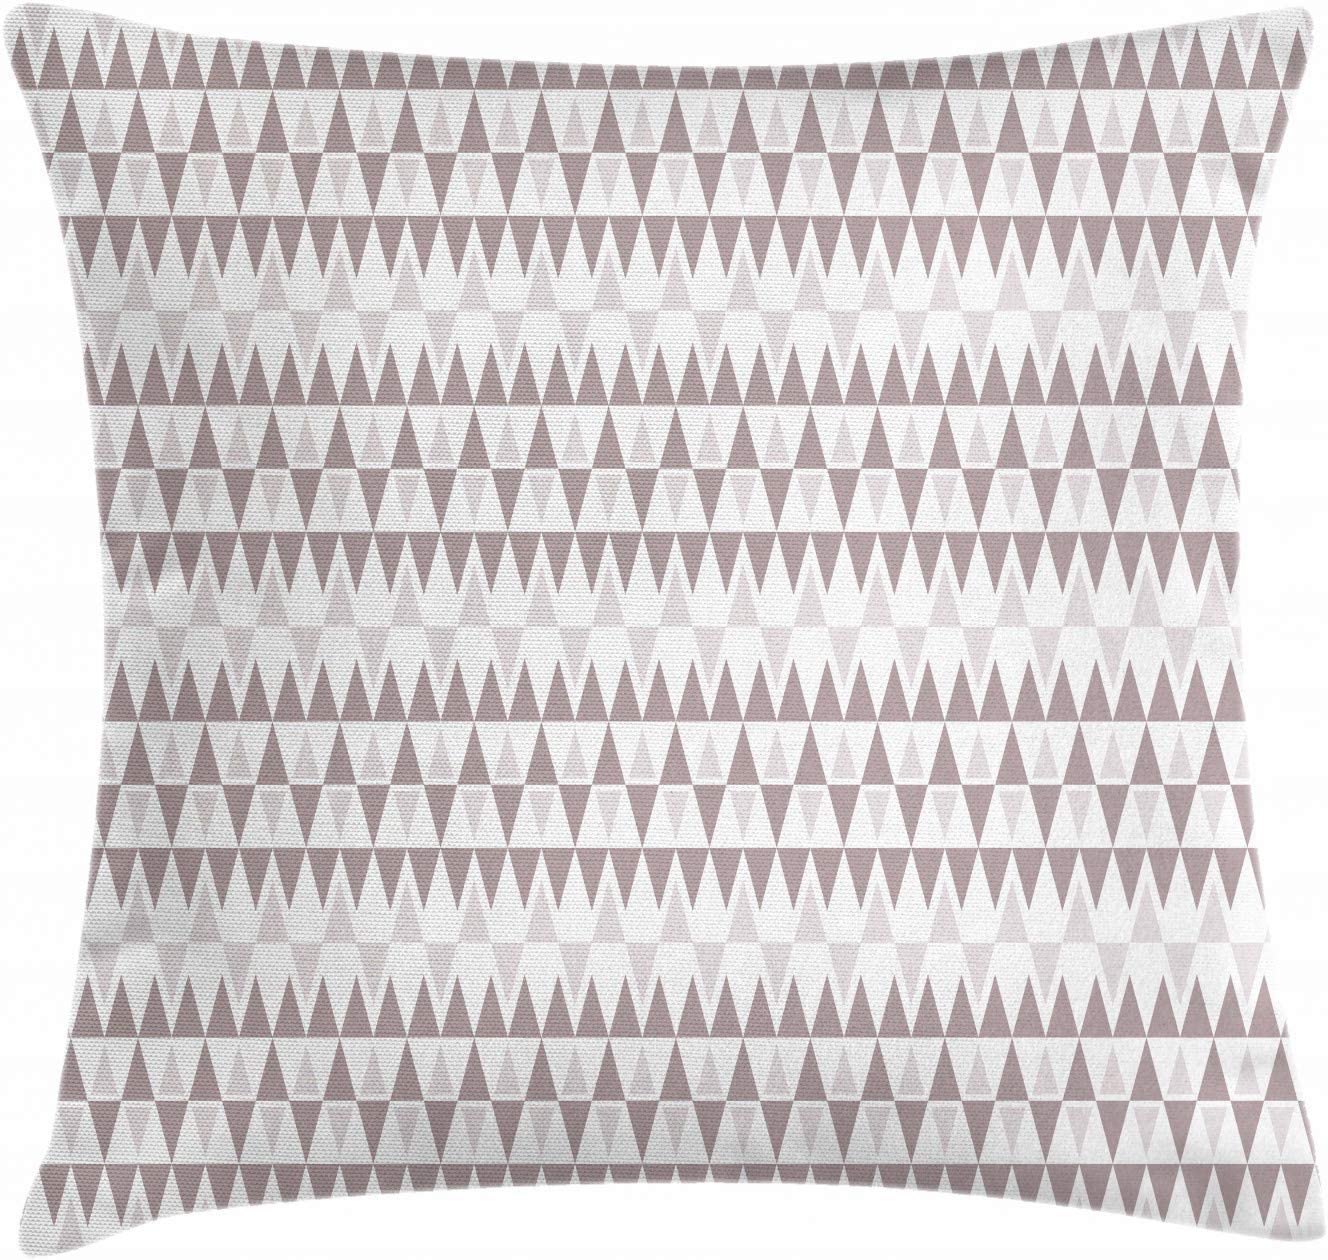 Houlipeng Geometric Throw Pillow Cushion Cover, Aztec Style Repetitive Triangles in Gentle Pastel Tones, Decorative Square Accent Pillow Case, 18 X 18 Inches, Pale Mauve White and Mauve Taupe